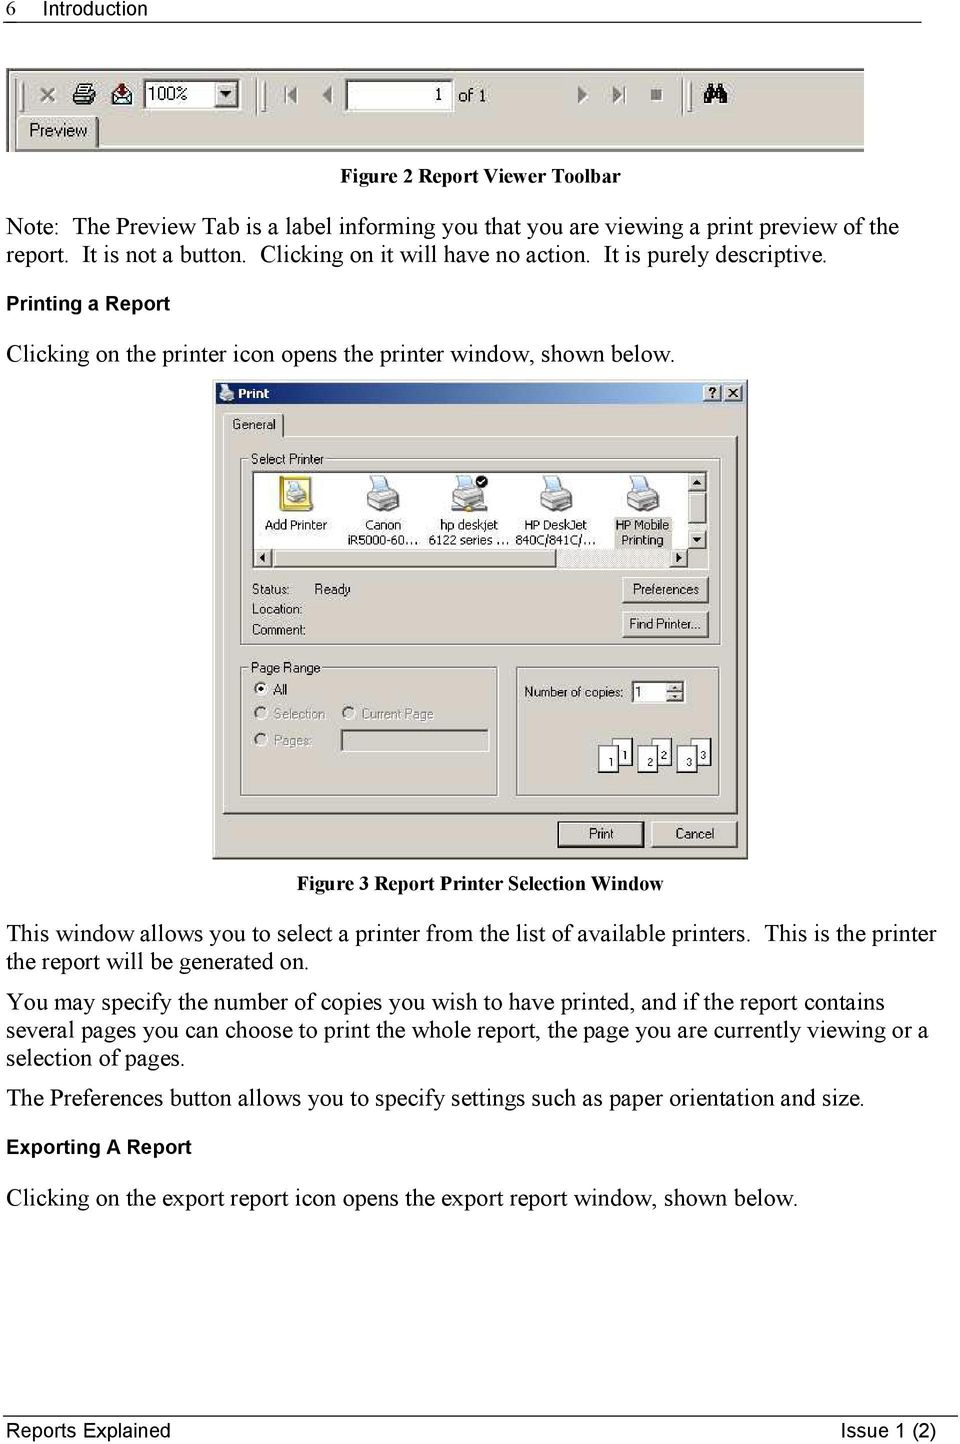 Figure 3 Report Printer Selection Window This window allows you to select a printer from the list of available printers. This is the printer the report will be generated on.